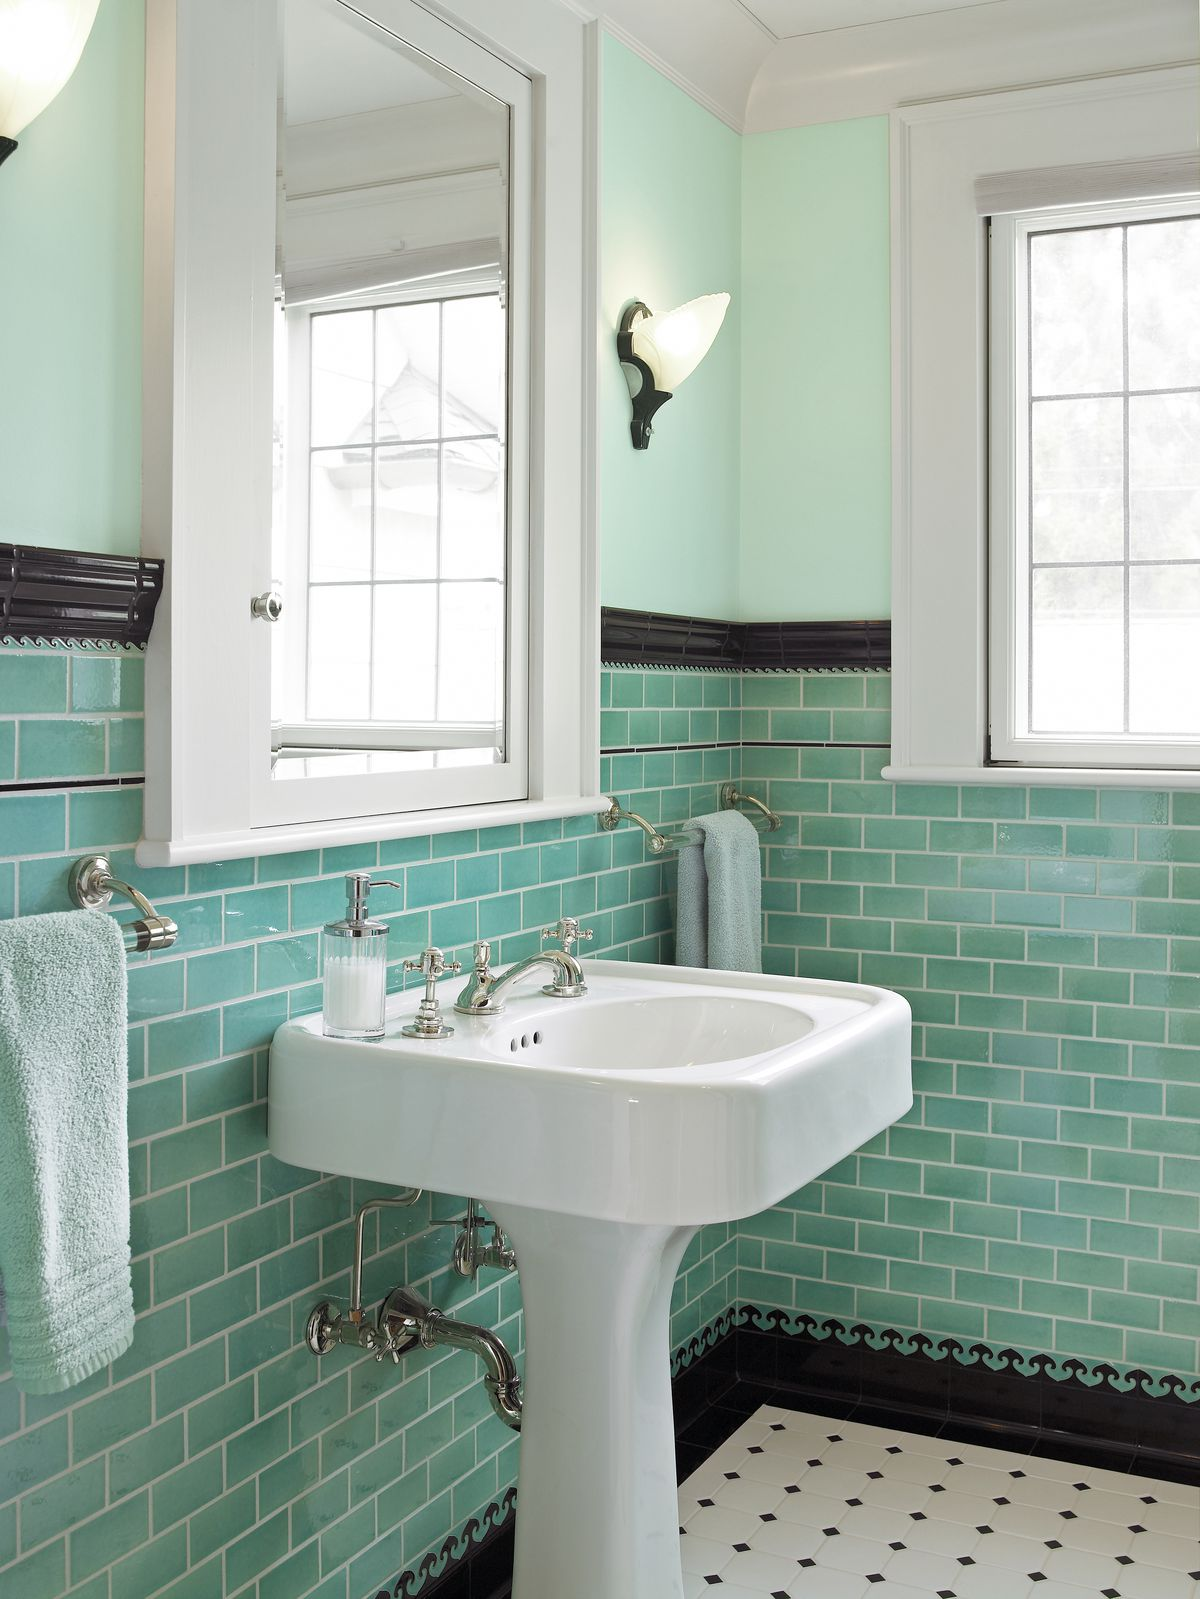 Contrasting Base And Cap Subway Tile In Bathroom